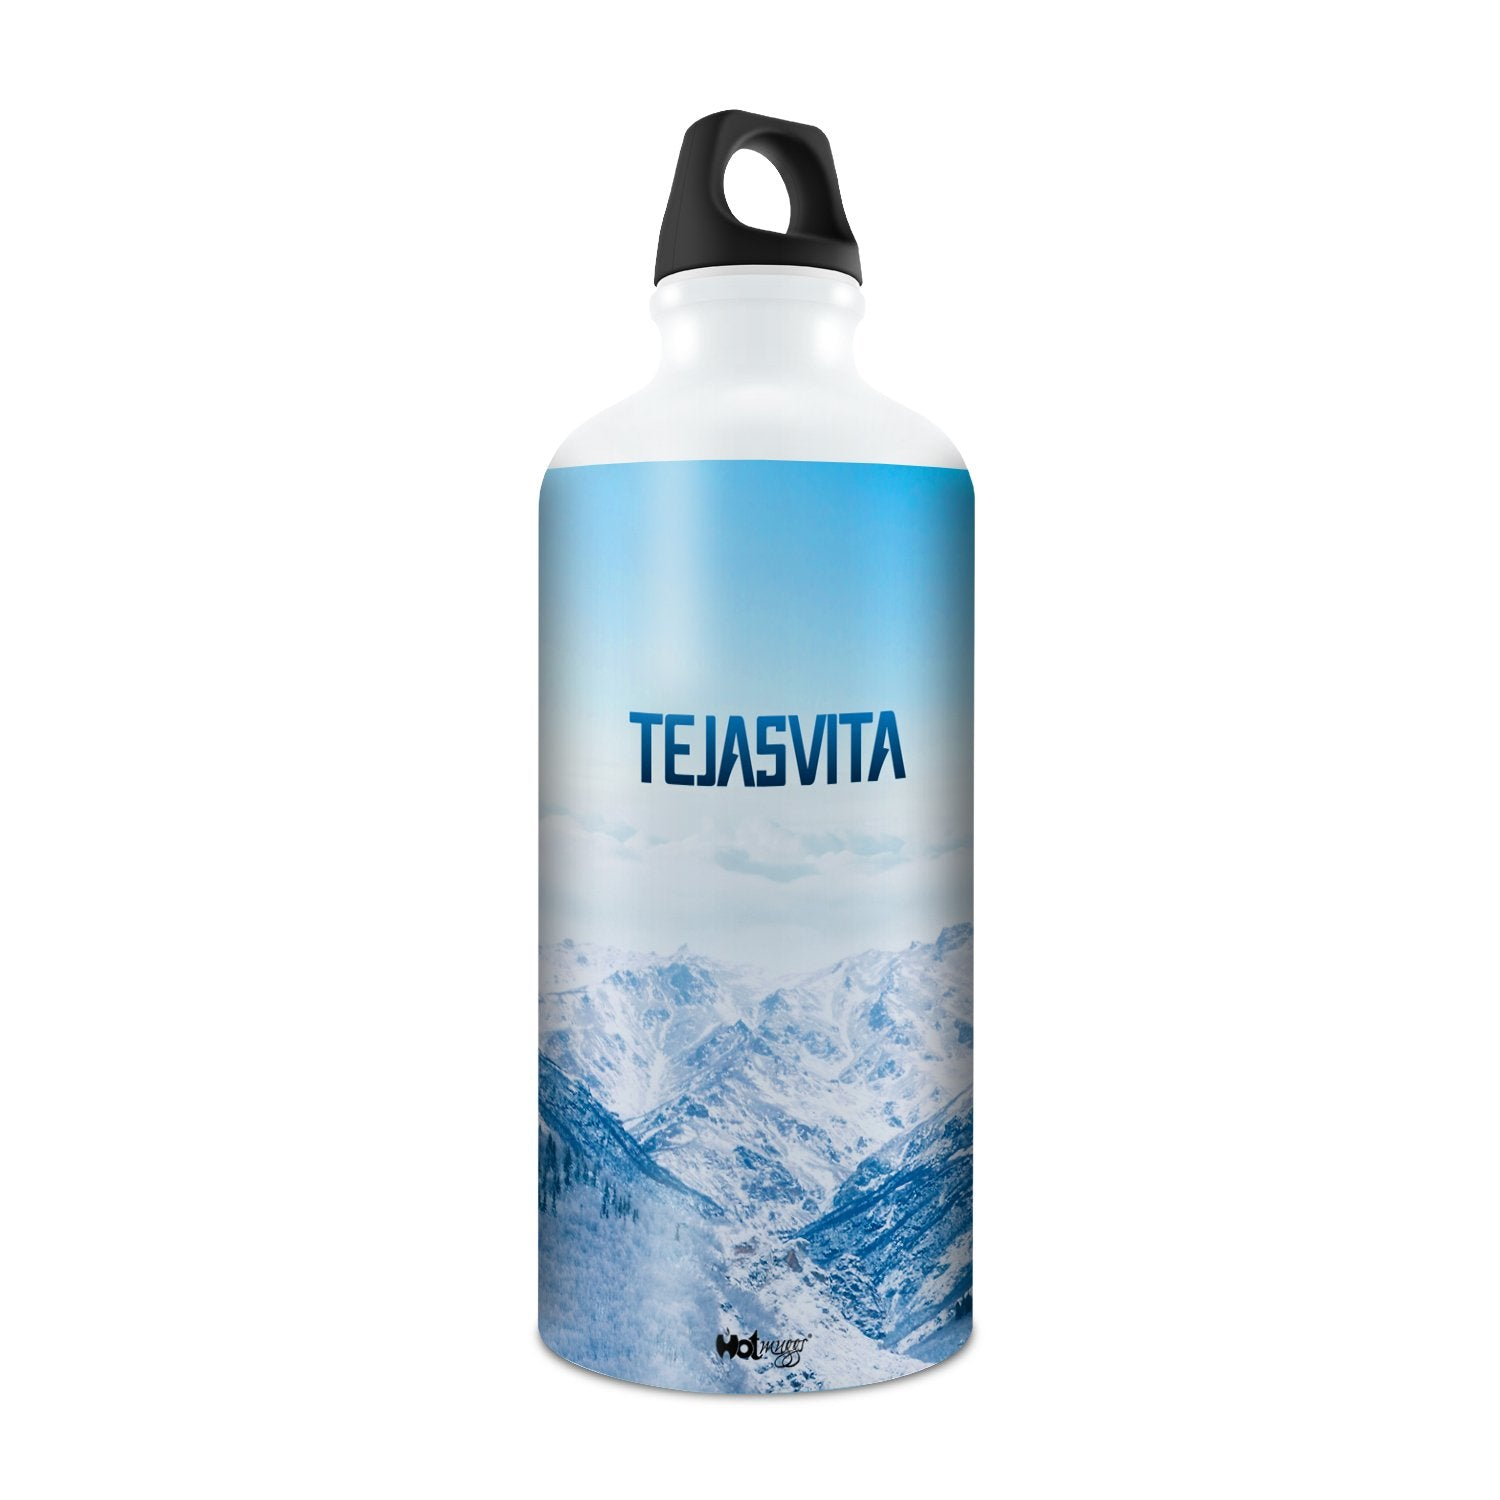 Me Skies Bottle - Tejasvita